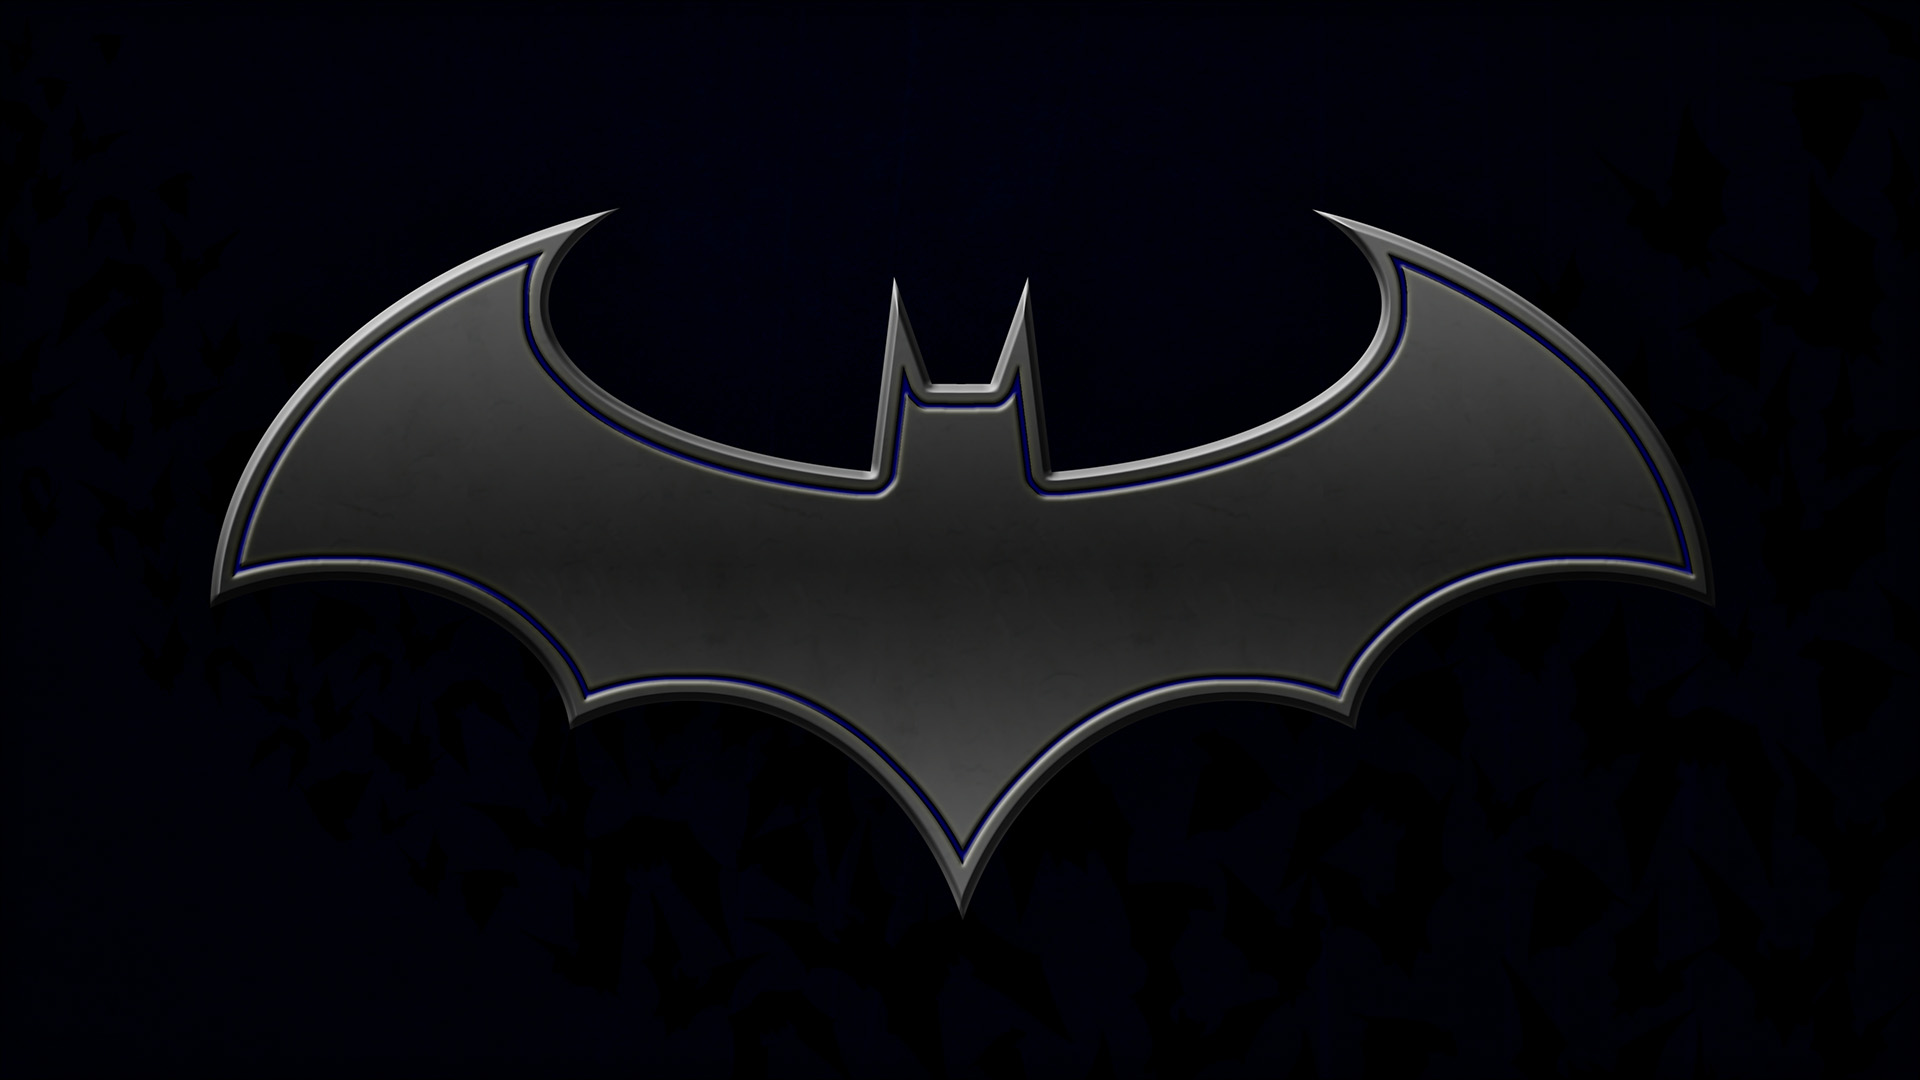 batman logo hd wallpaper wallpapers55com   Best Wallpapers for PCs 1920x1080